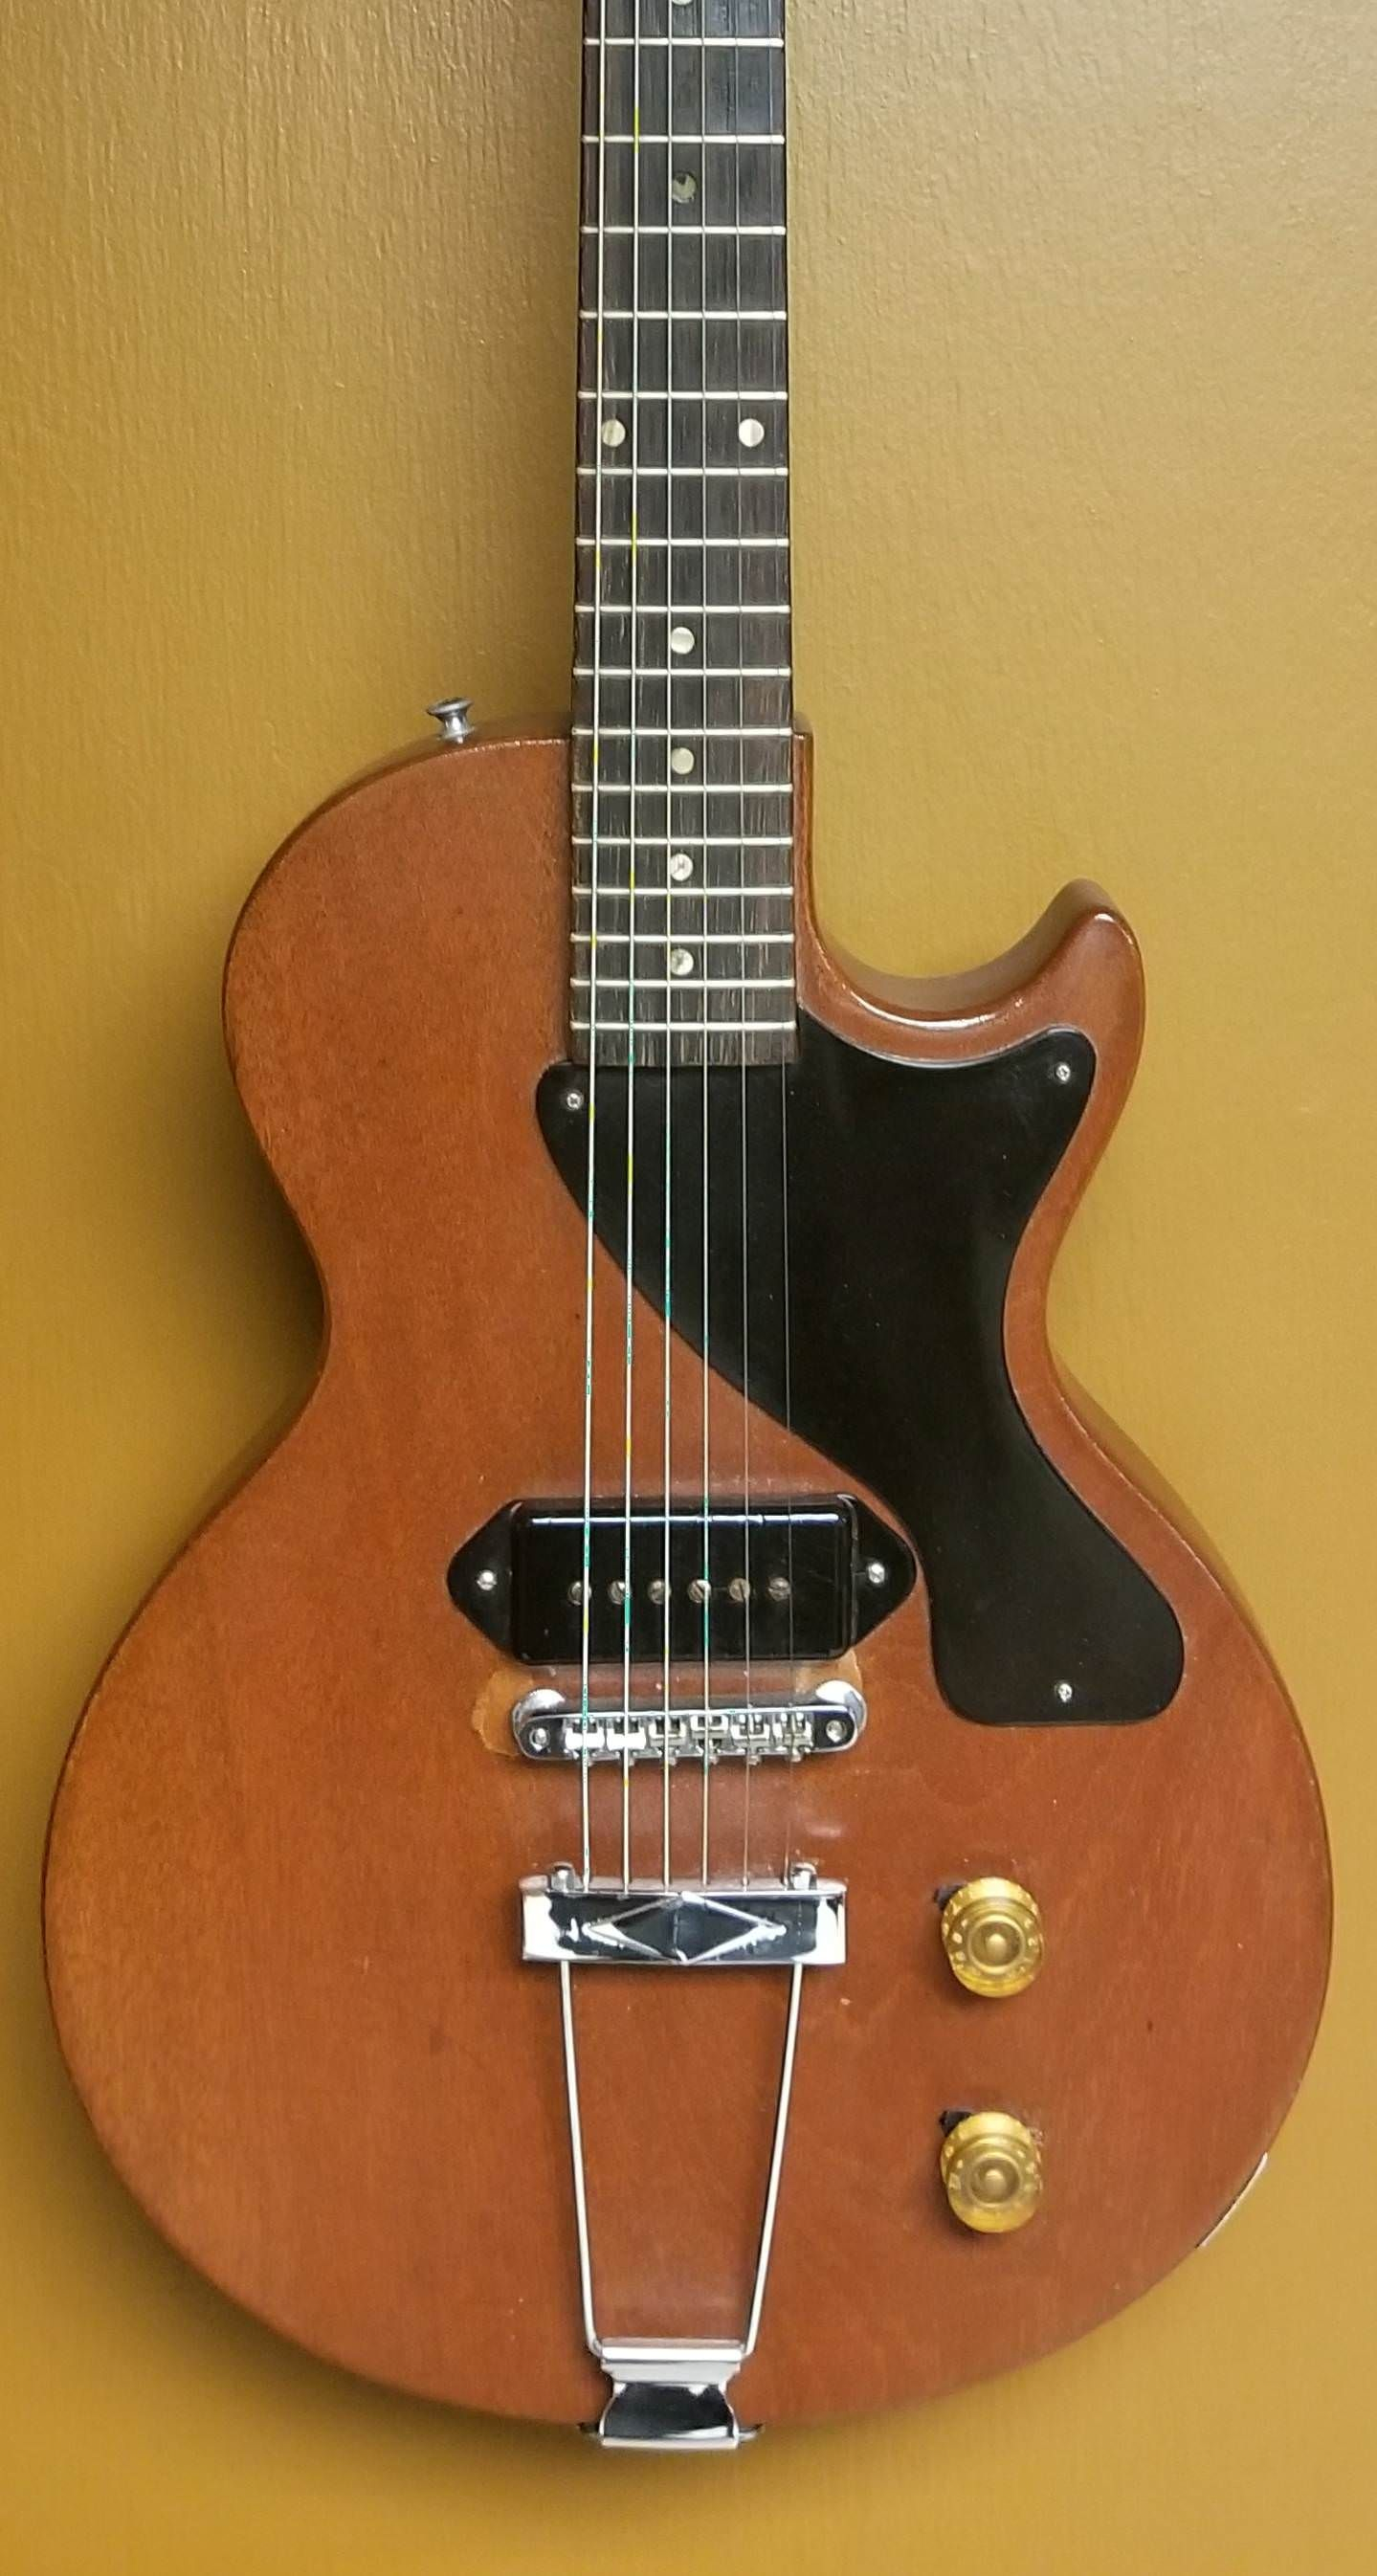 1955 Gibson Les Paul Junior With Vintage Bridge And Tail Piece Flying V Building Or Something Similar Page 8 Mylespaulcom